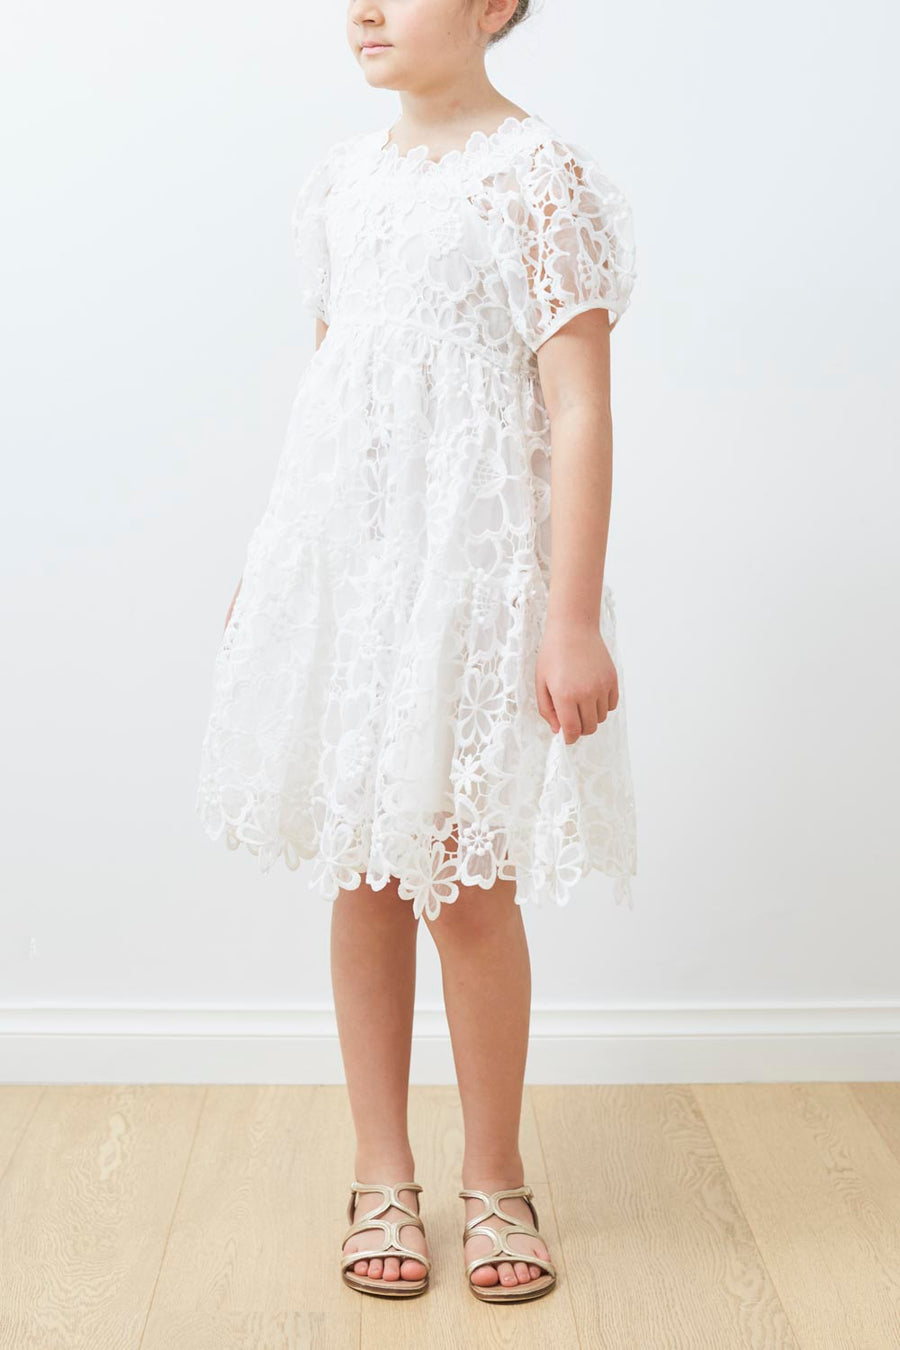 Flower Bouquet Dress by Petite Amalie